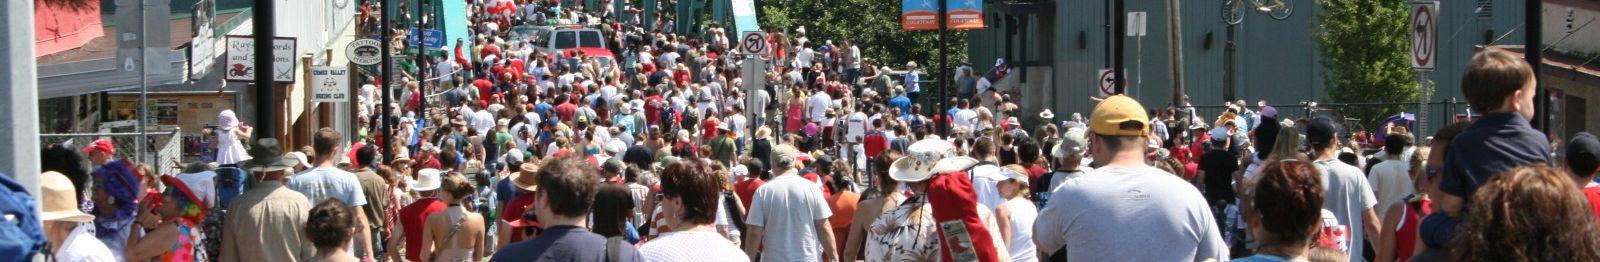 Canada Day in Courtenay